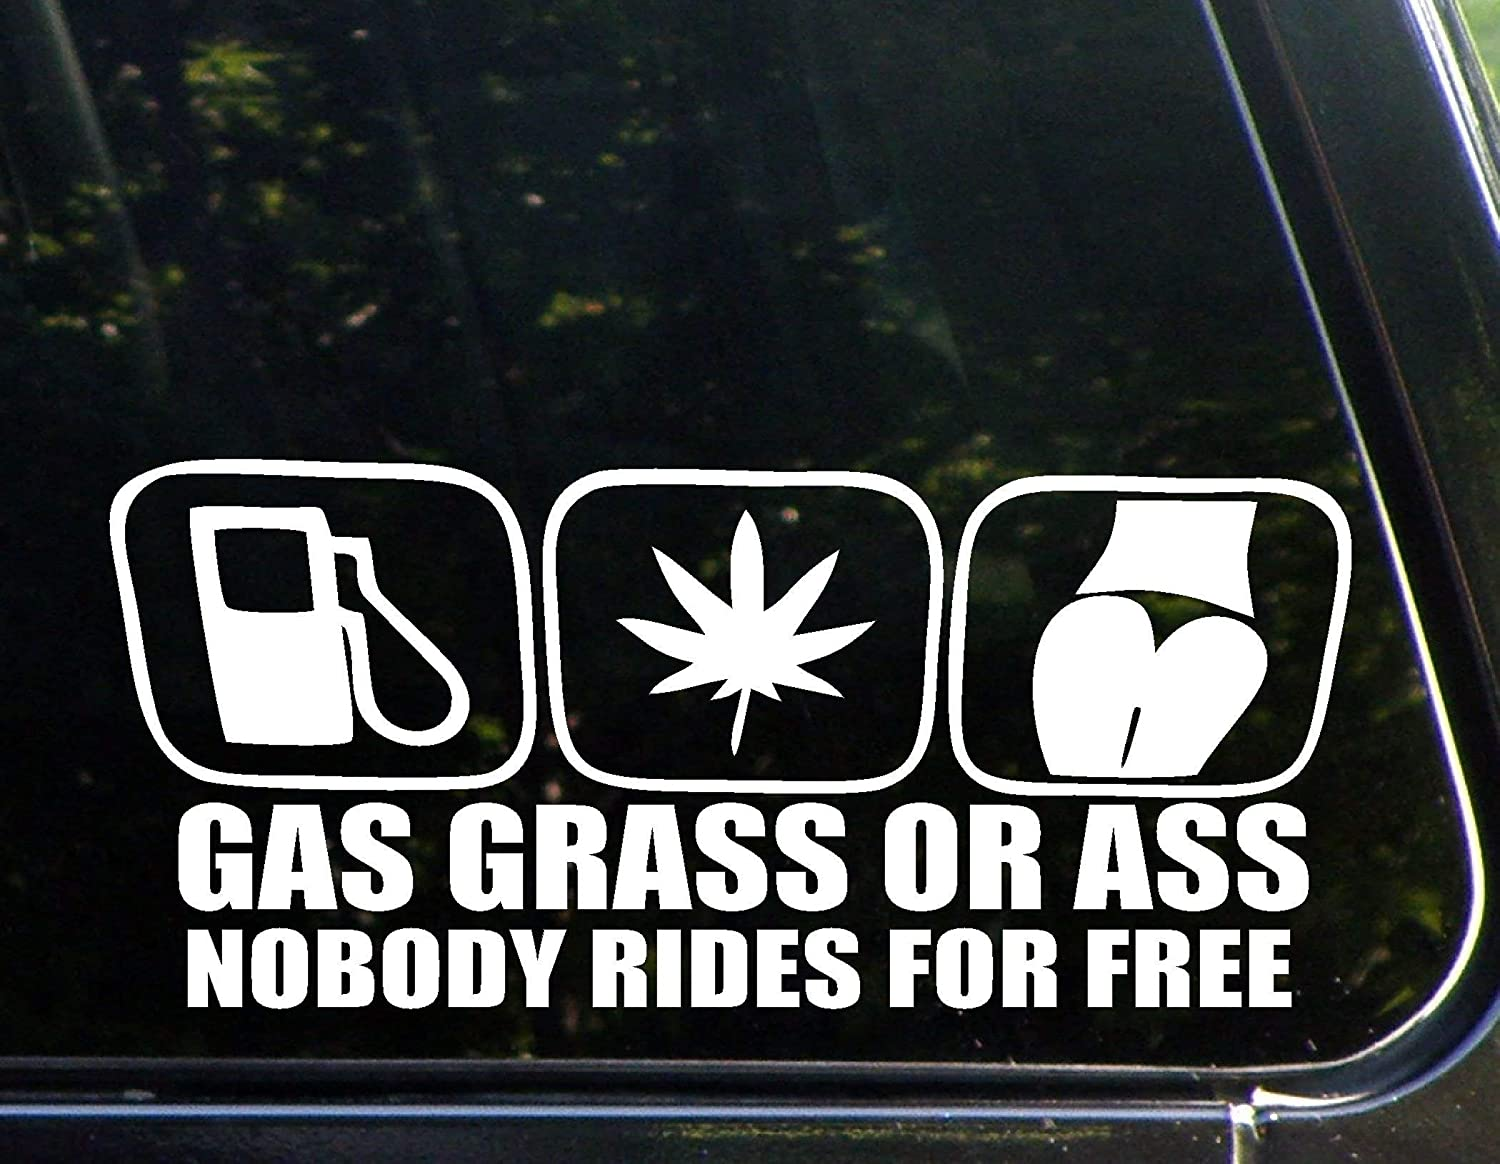 """Gas Grass Or Ass Nobody Rides for Free (8-1/2"""" x 4"""") Die Cut Decal Bumper Sticker for Windows, Cars, Trucks, Laptops, Etc."""